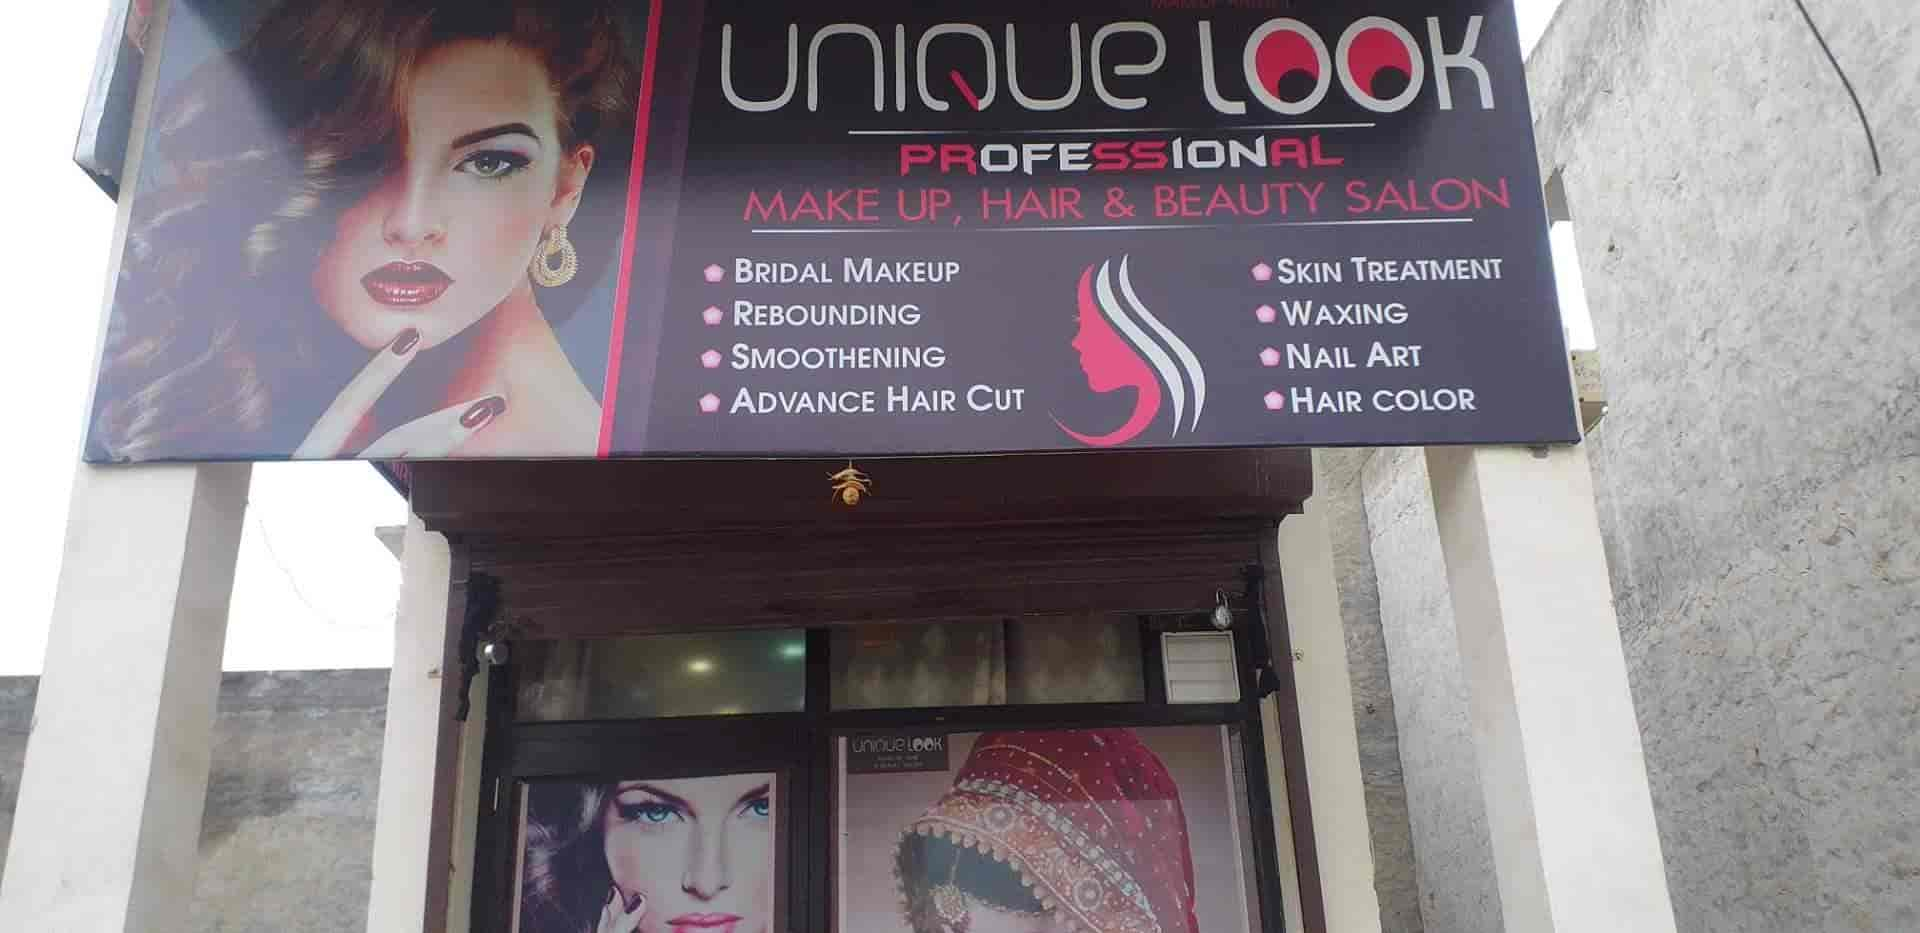 Unique Look, Ferozepur City - Salons in Ferozepur, Ferozepur